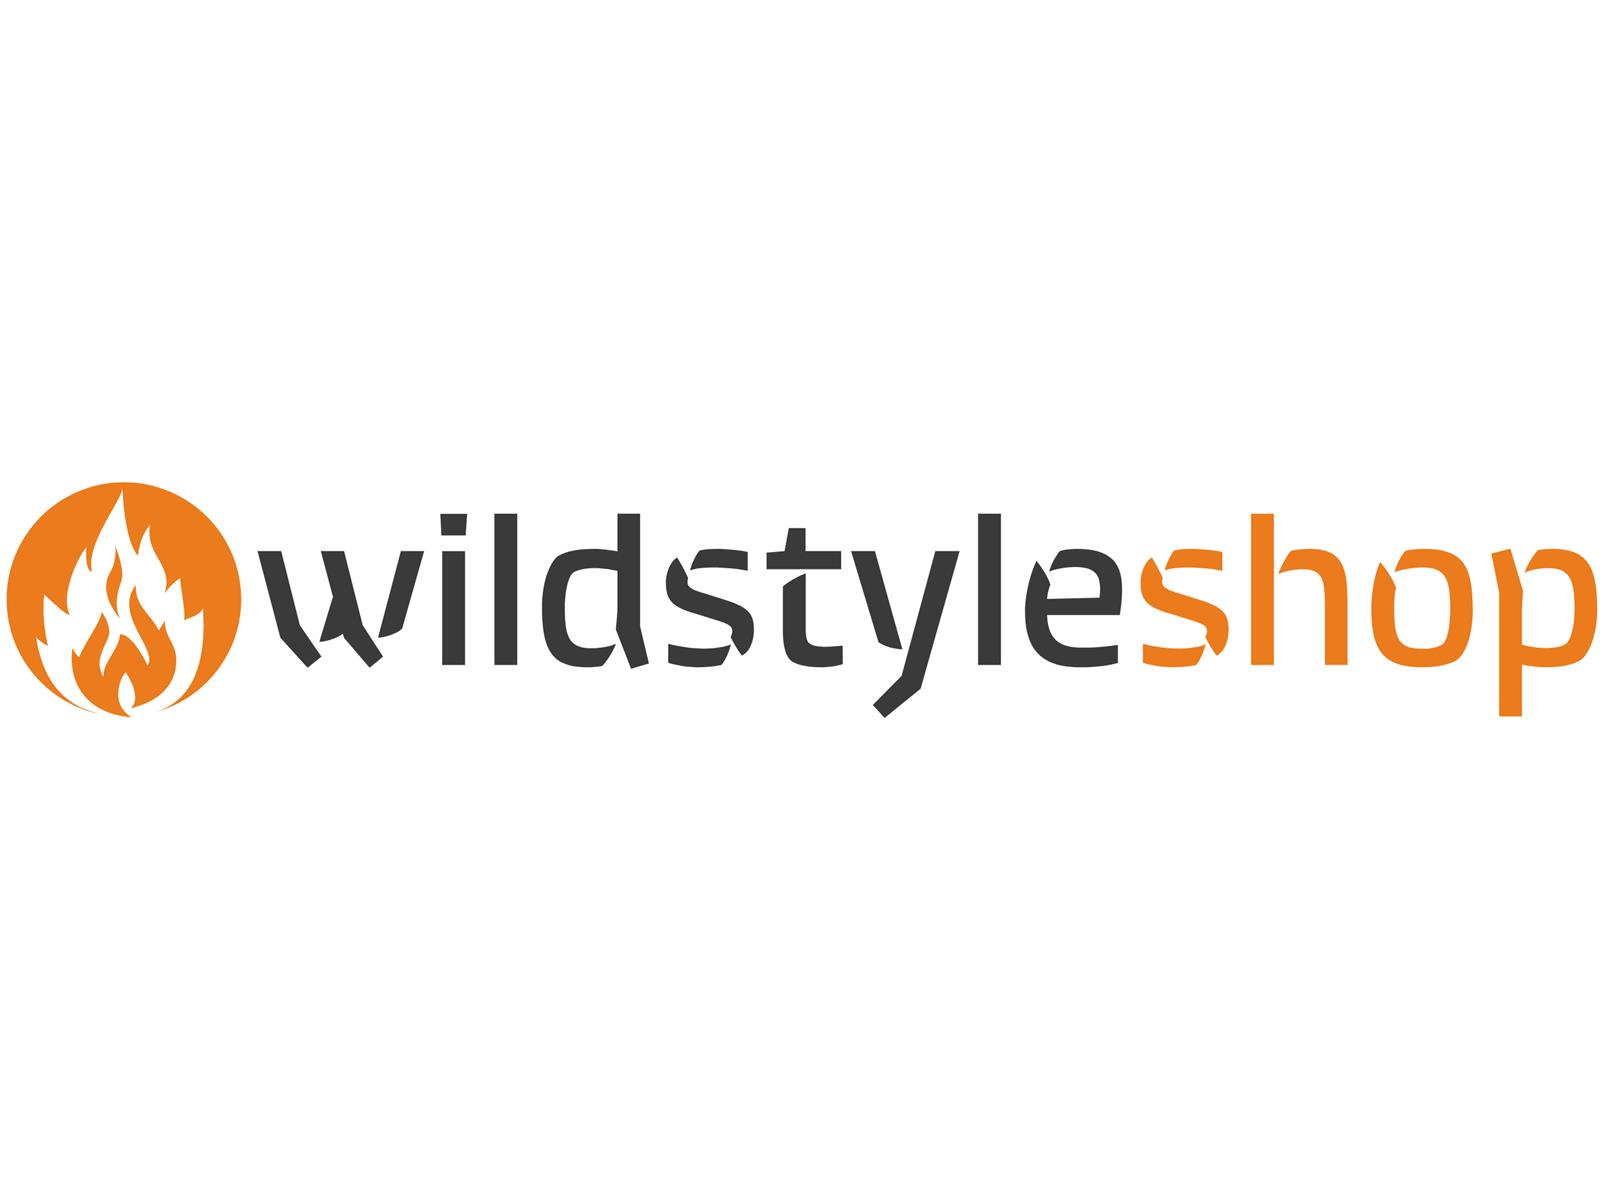 Wildstyle Shop